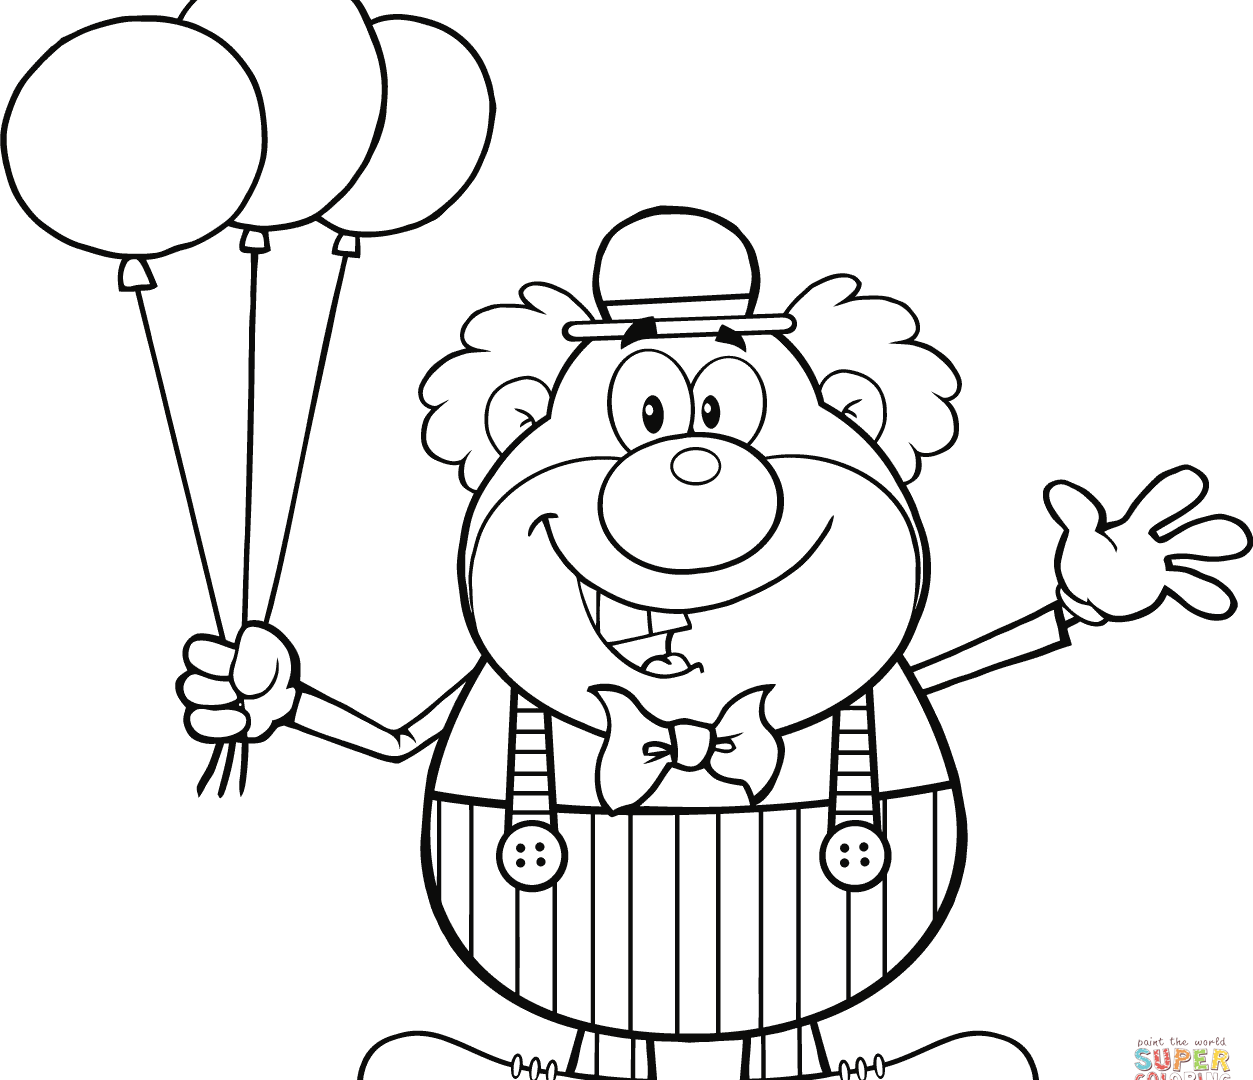 1253x1080 Clown Coloring Pages Circus Clown Black And White Hello Kitty